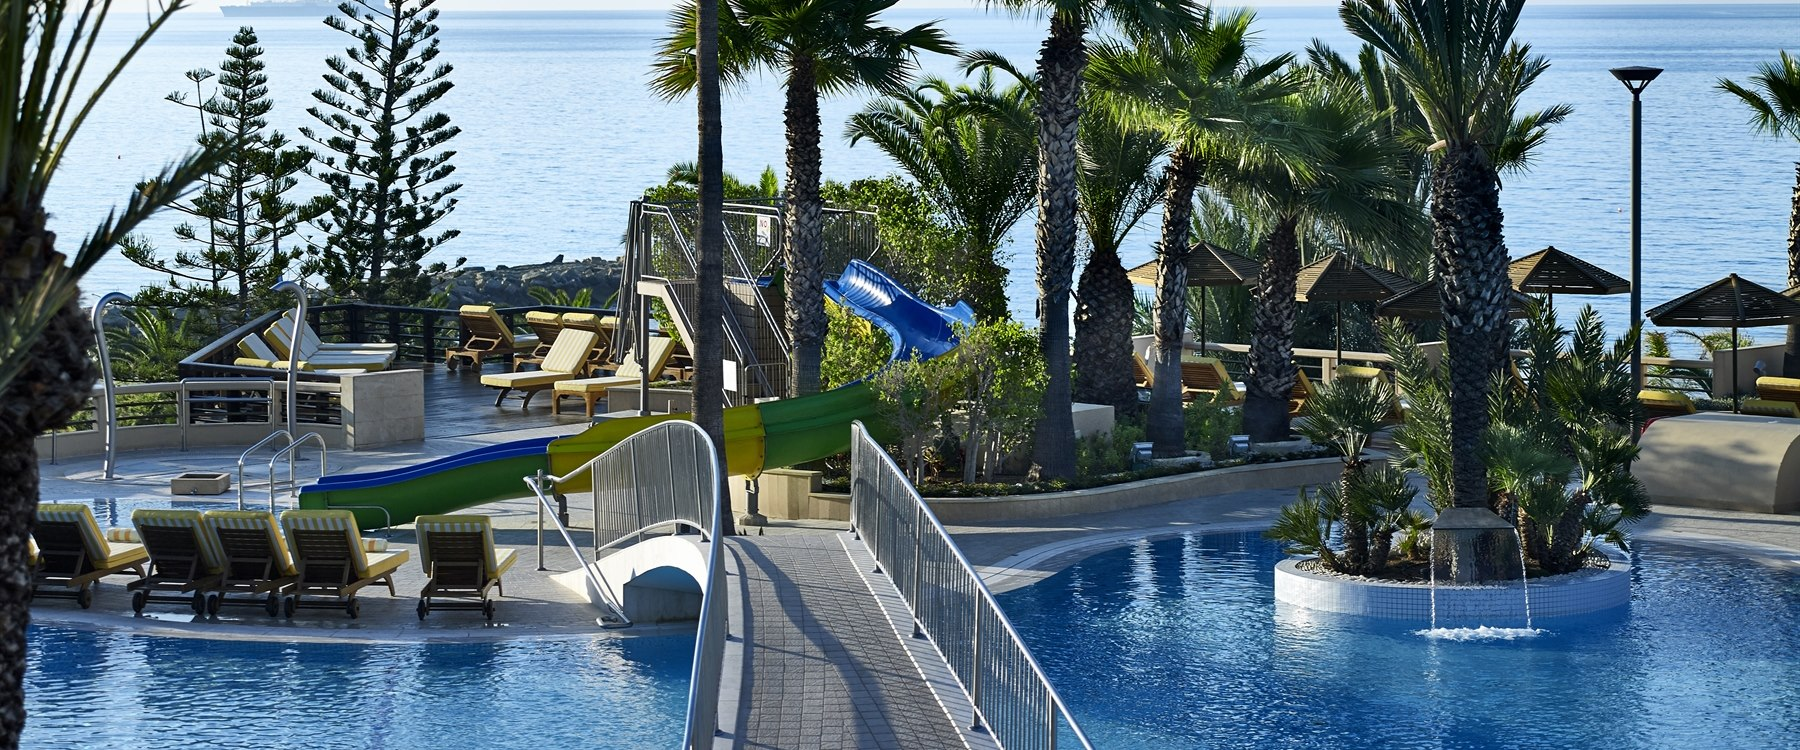 Kids Pool at Four Seasons Hotel Cyprus